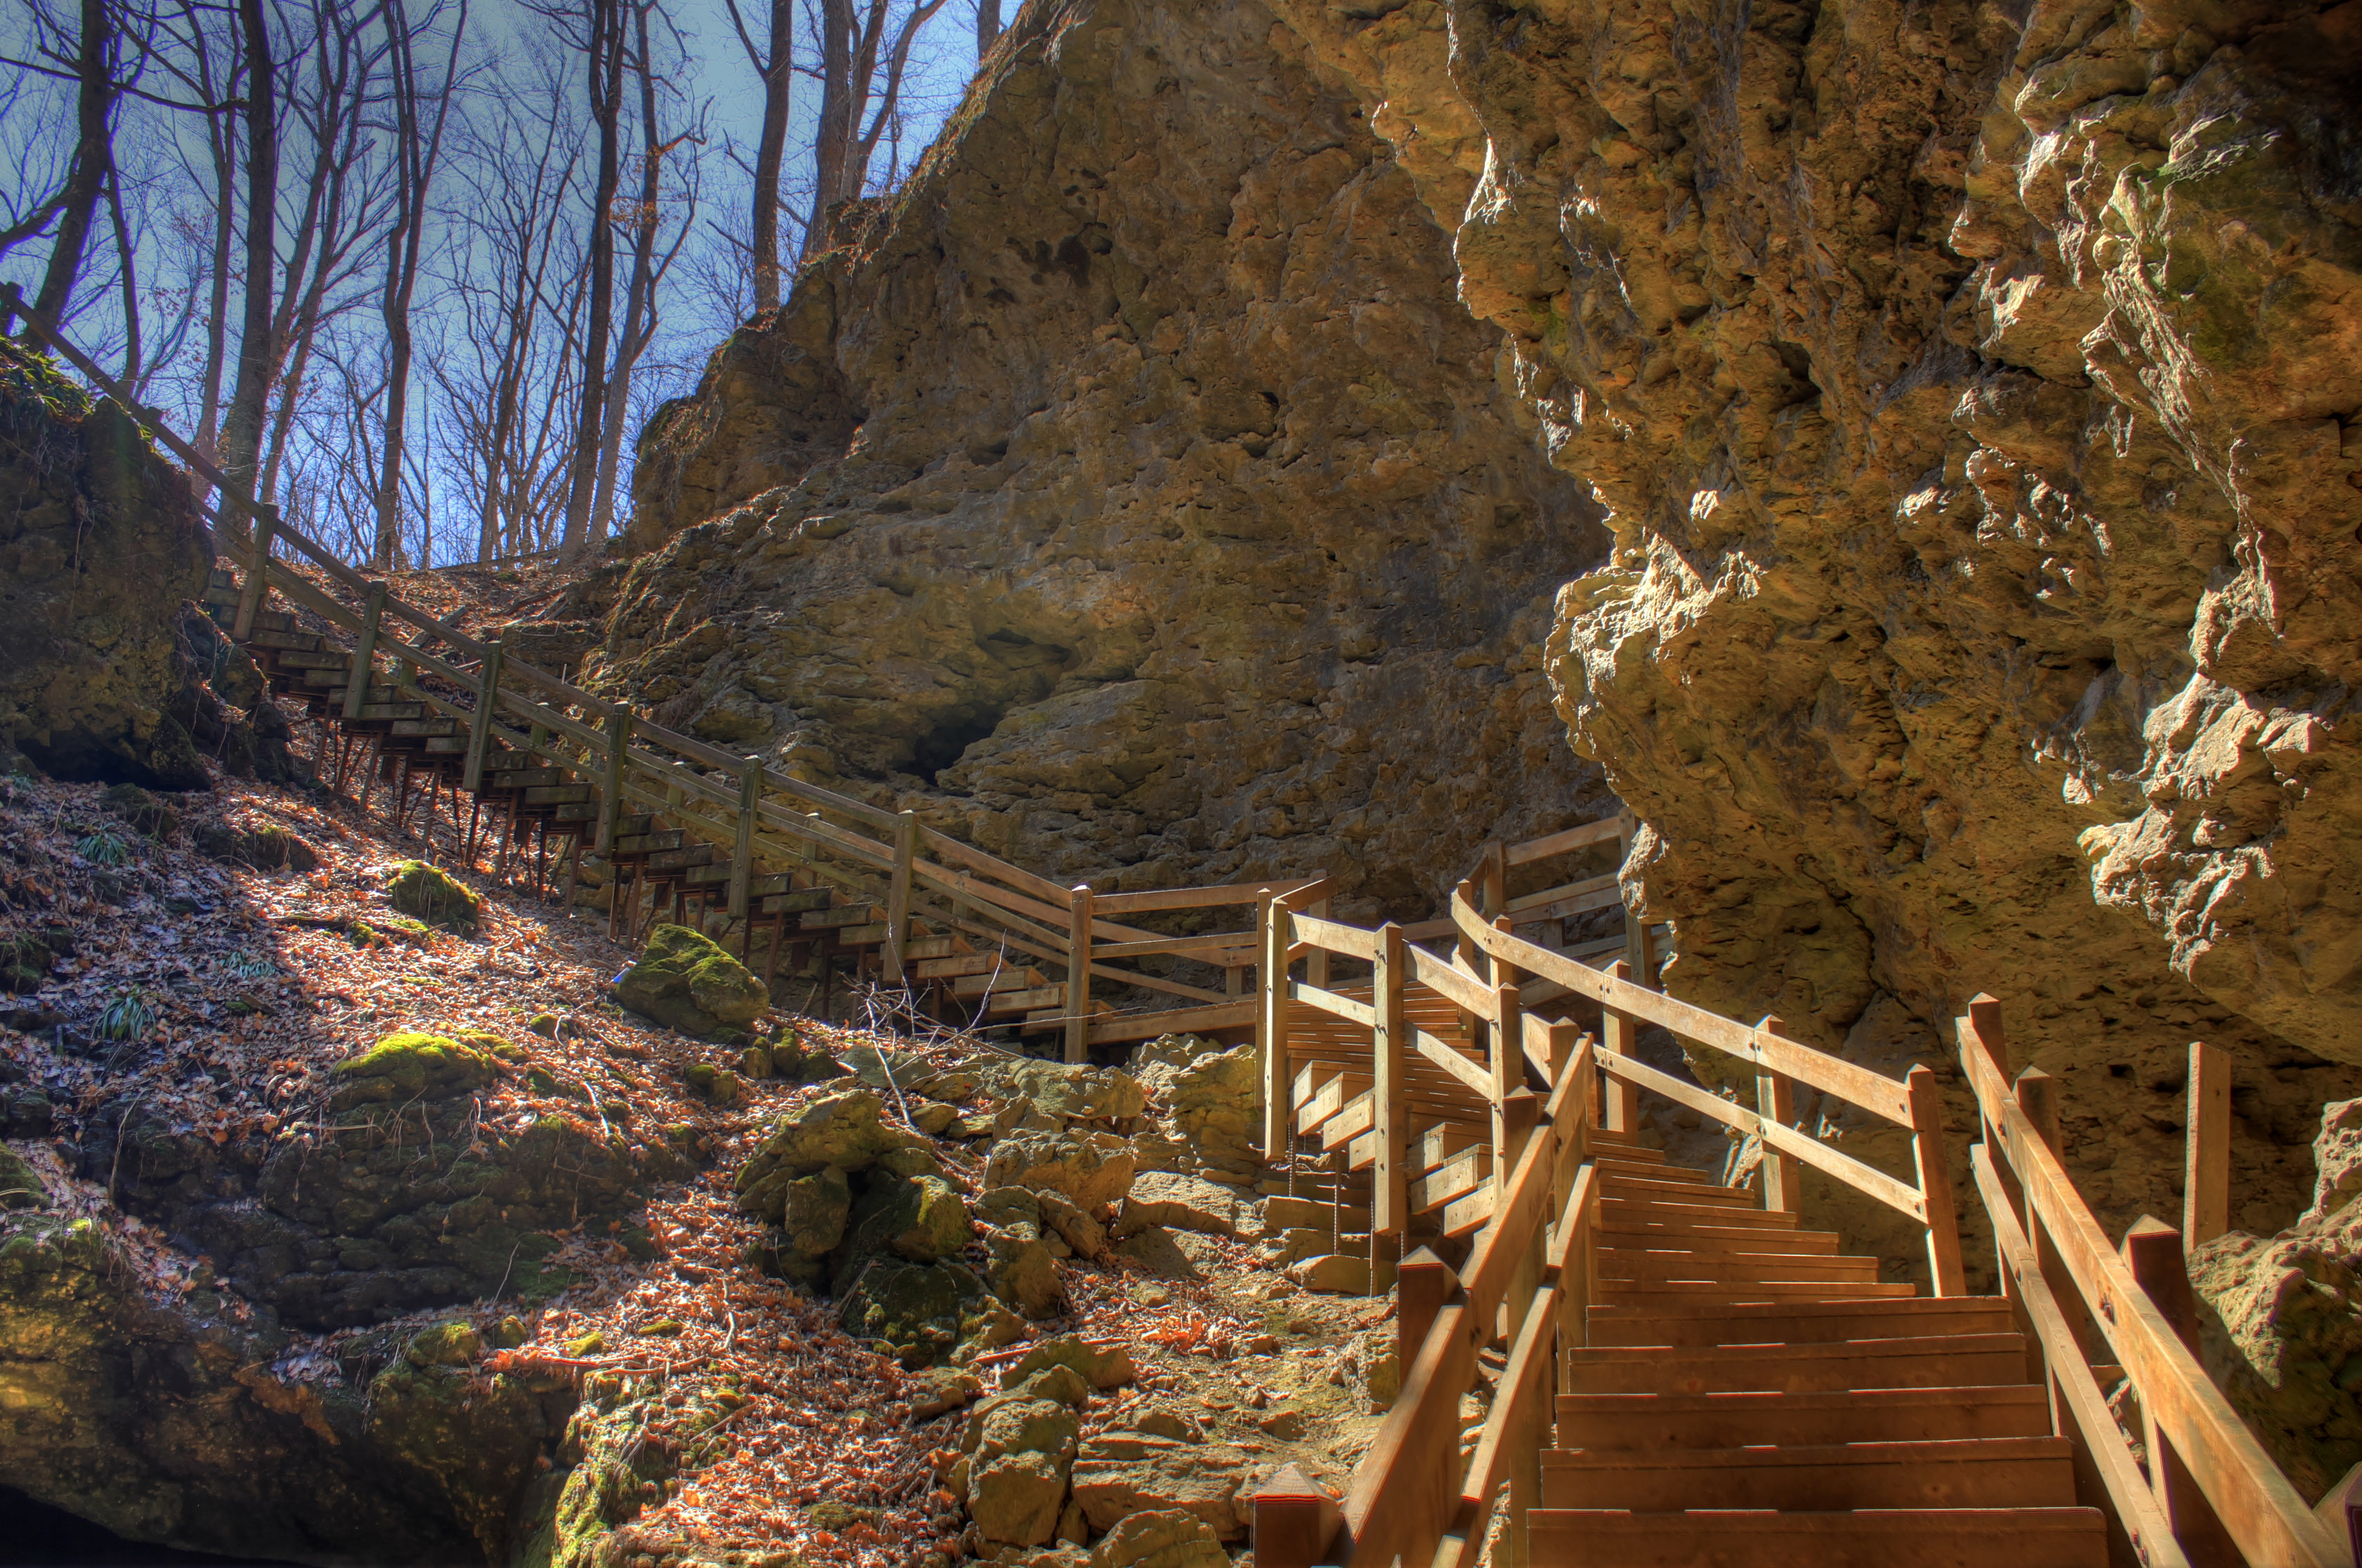 Walkway by the Cave at Maquoketa Caves State Park, Iowa image - Free ...